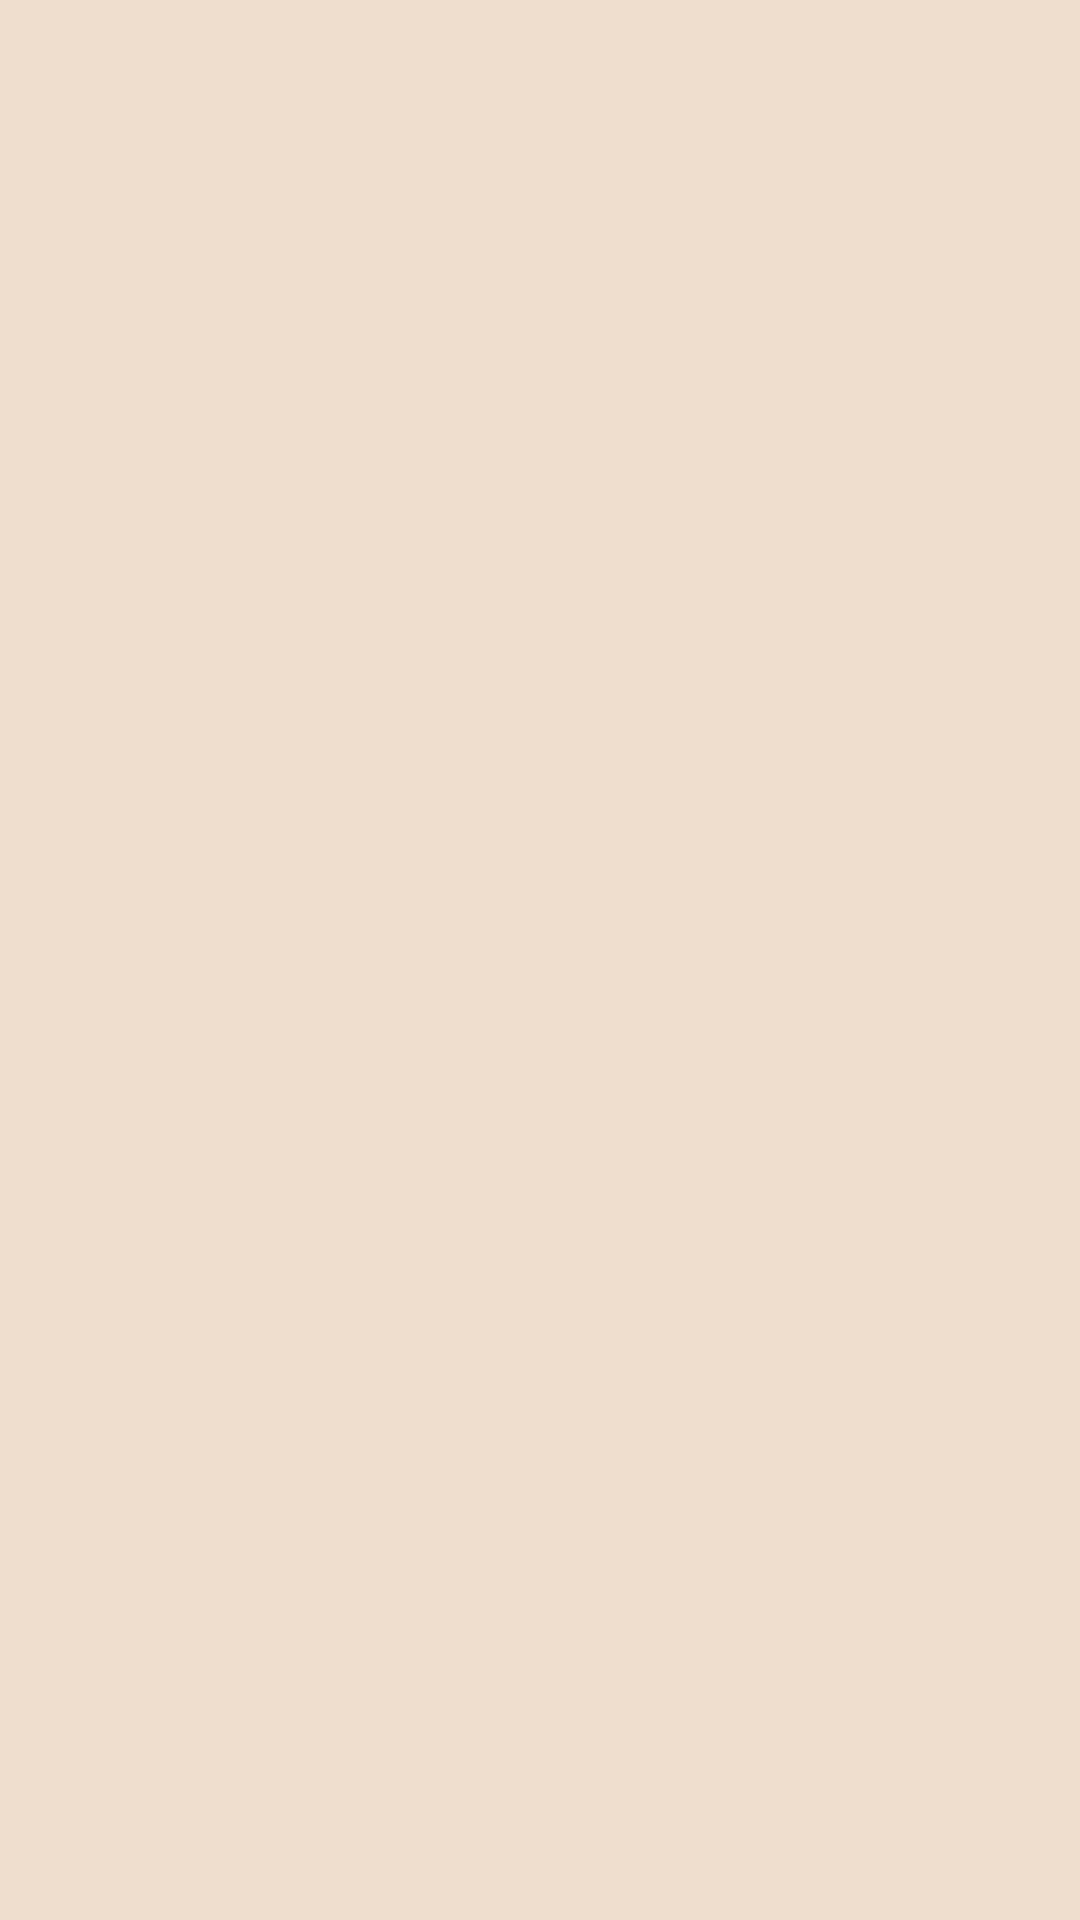 1080x1920 Almond Solid Color Background